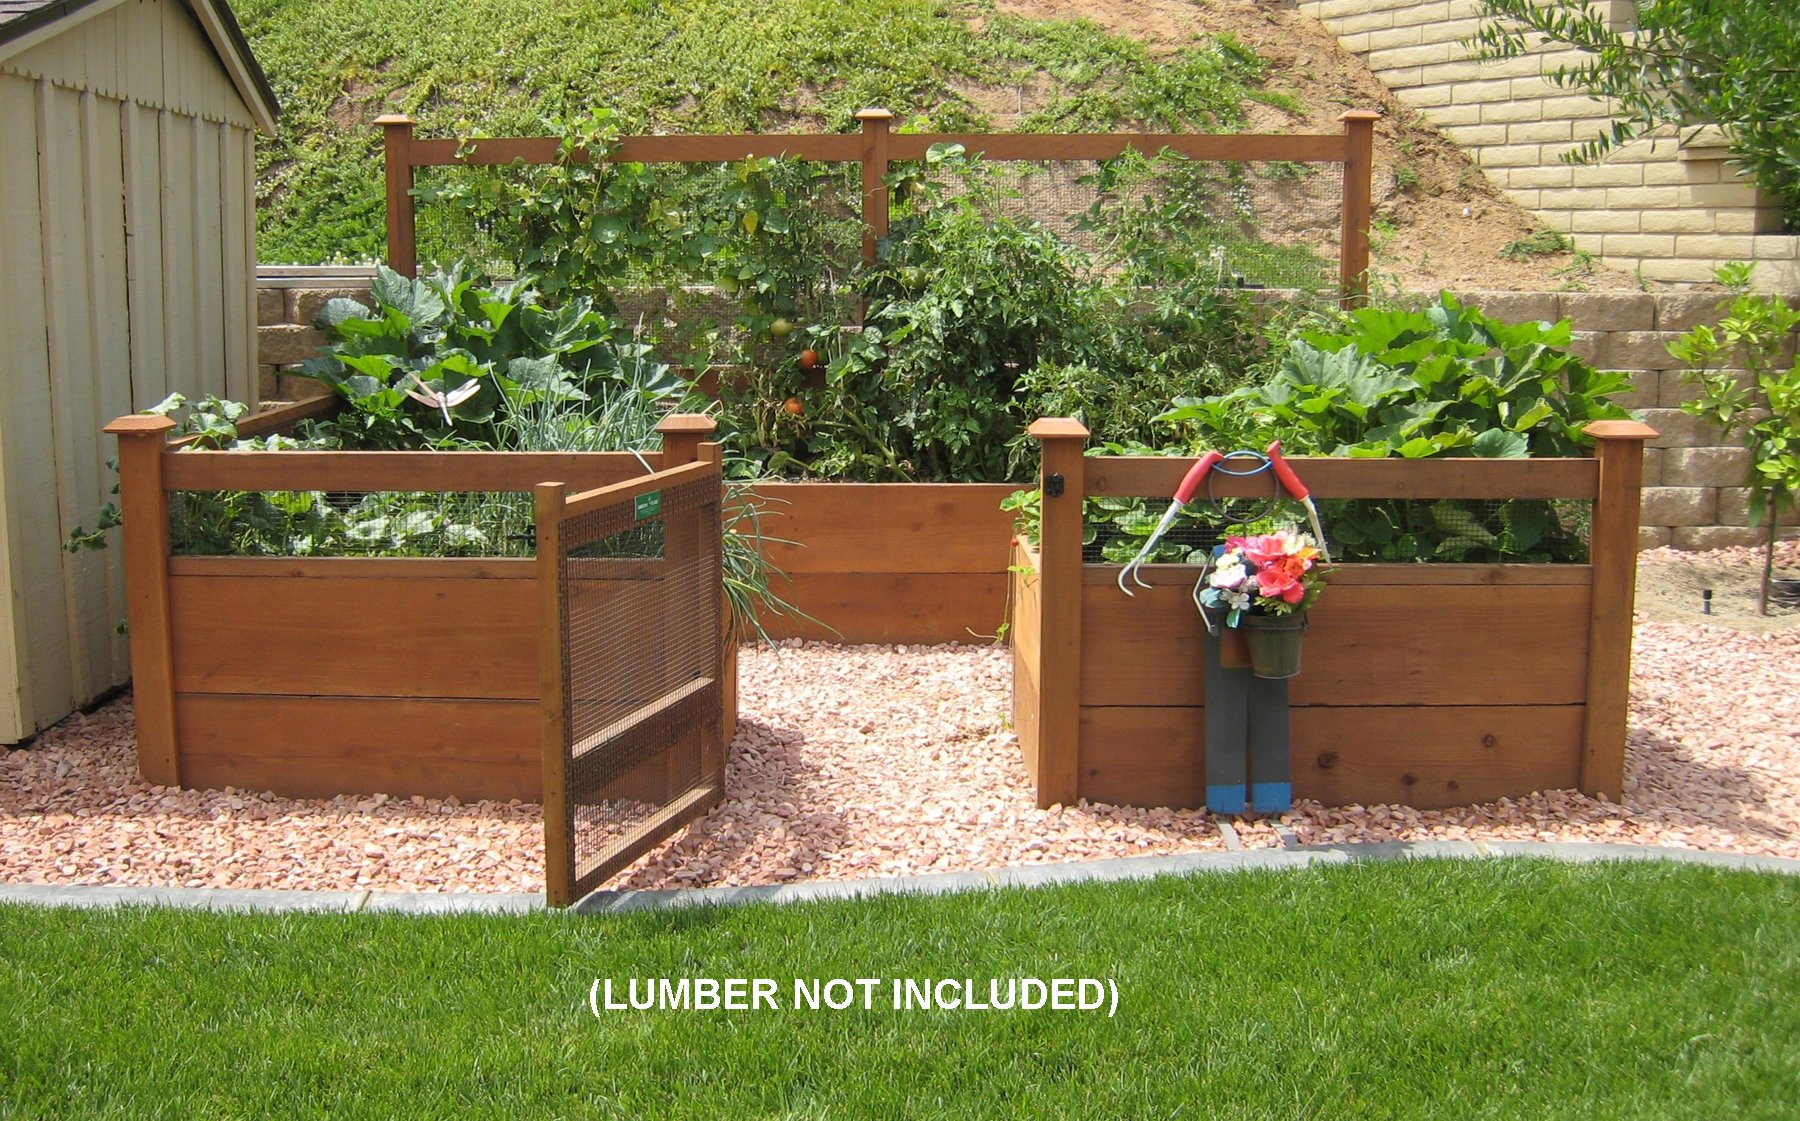 Just Add Lumber Vegetable Garden Kit - 8'x12' Deluxe by Gardens To Gro